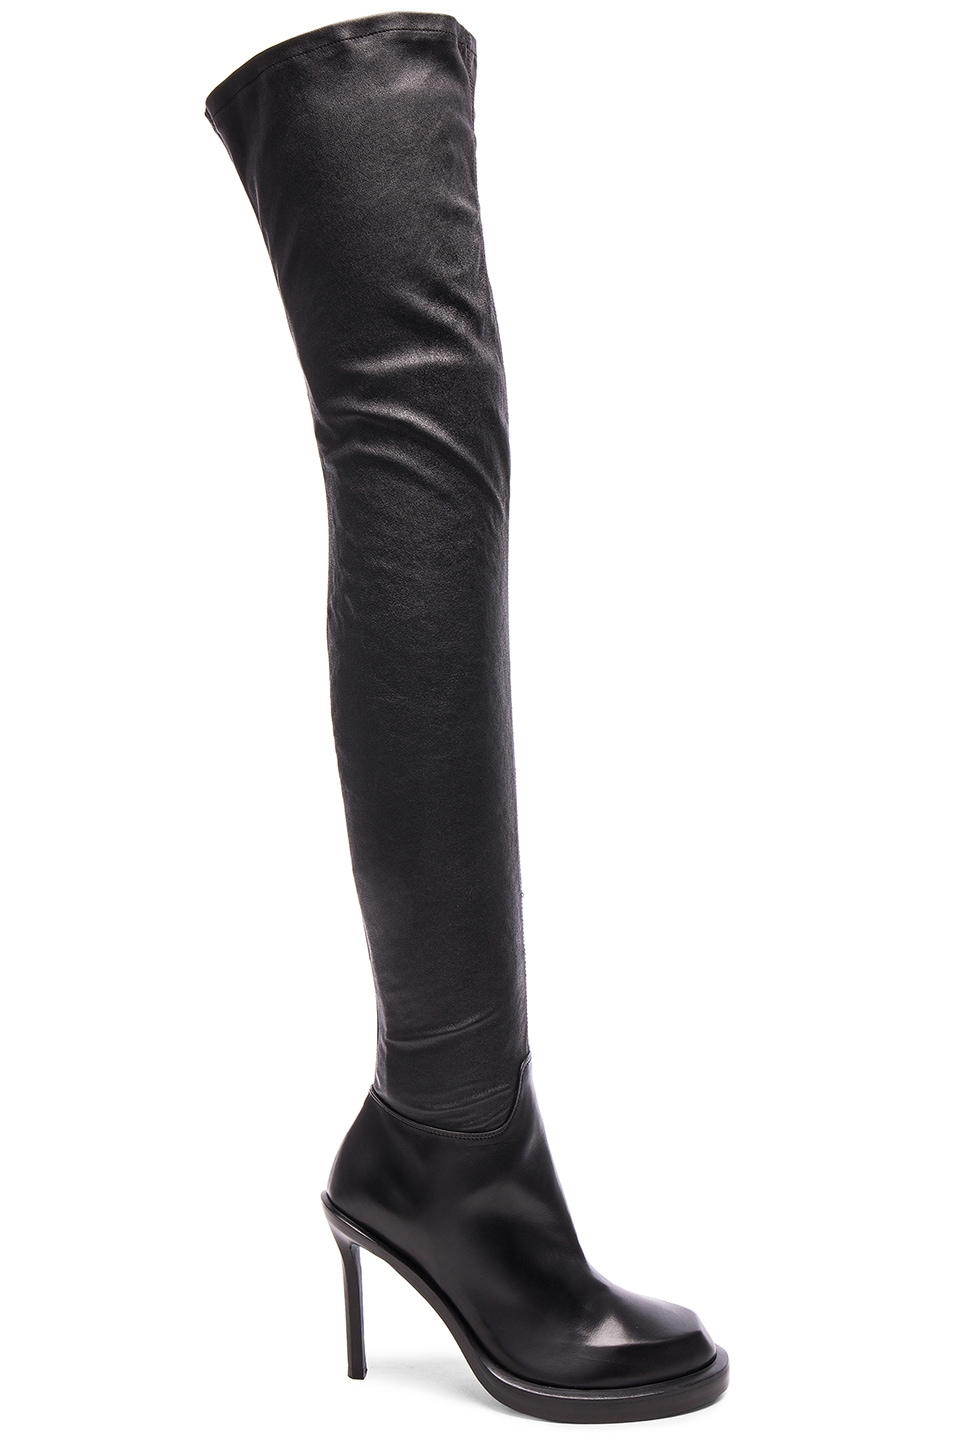 Image 1 of Ann Demeulemeester Over the Knee Leather Boots in Black